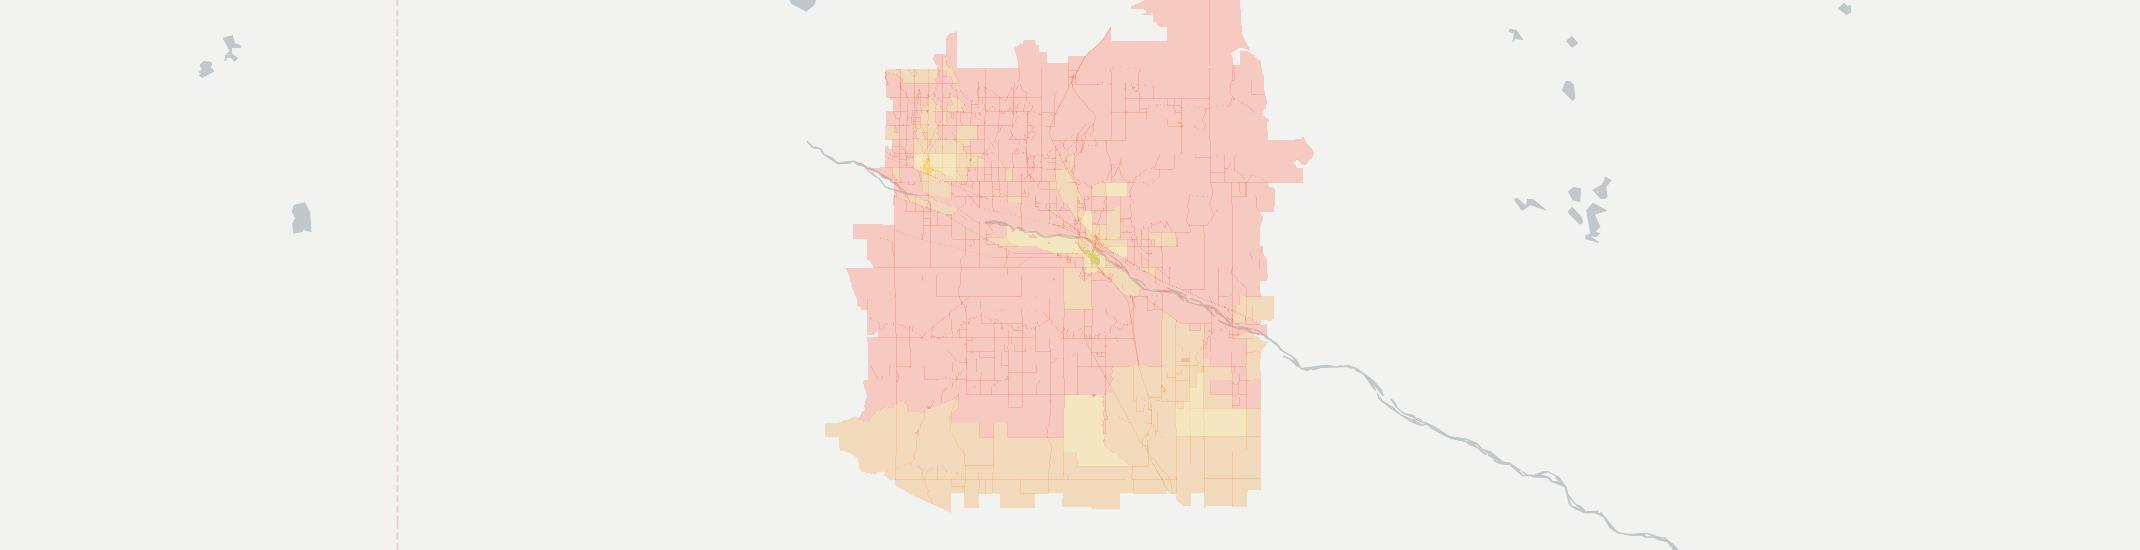 Bridgeport Internet Competition Map. Click for interactive map.